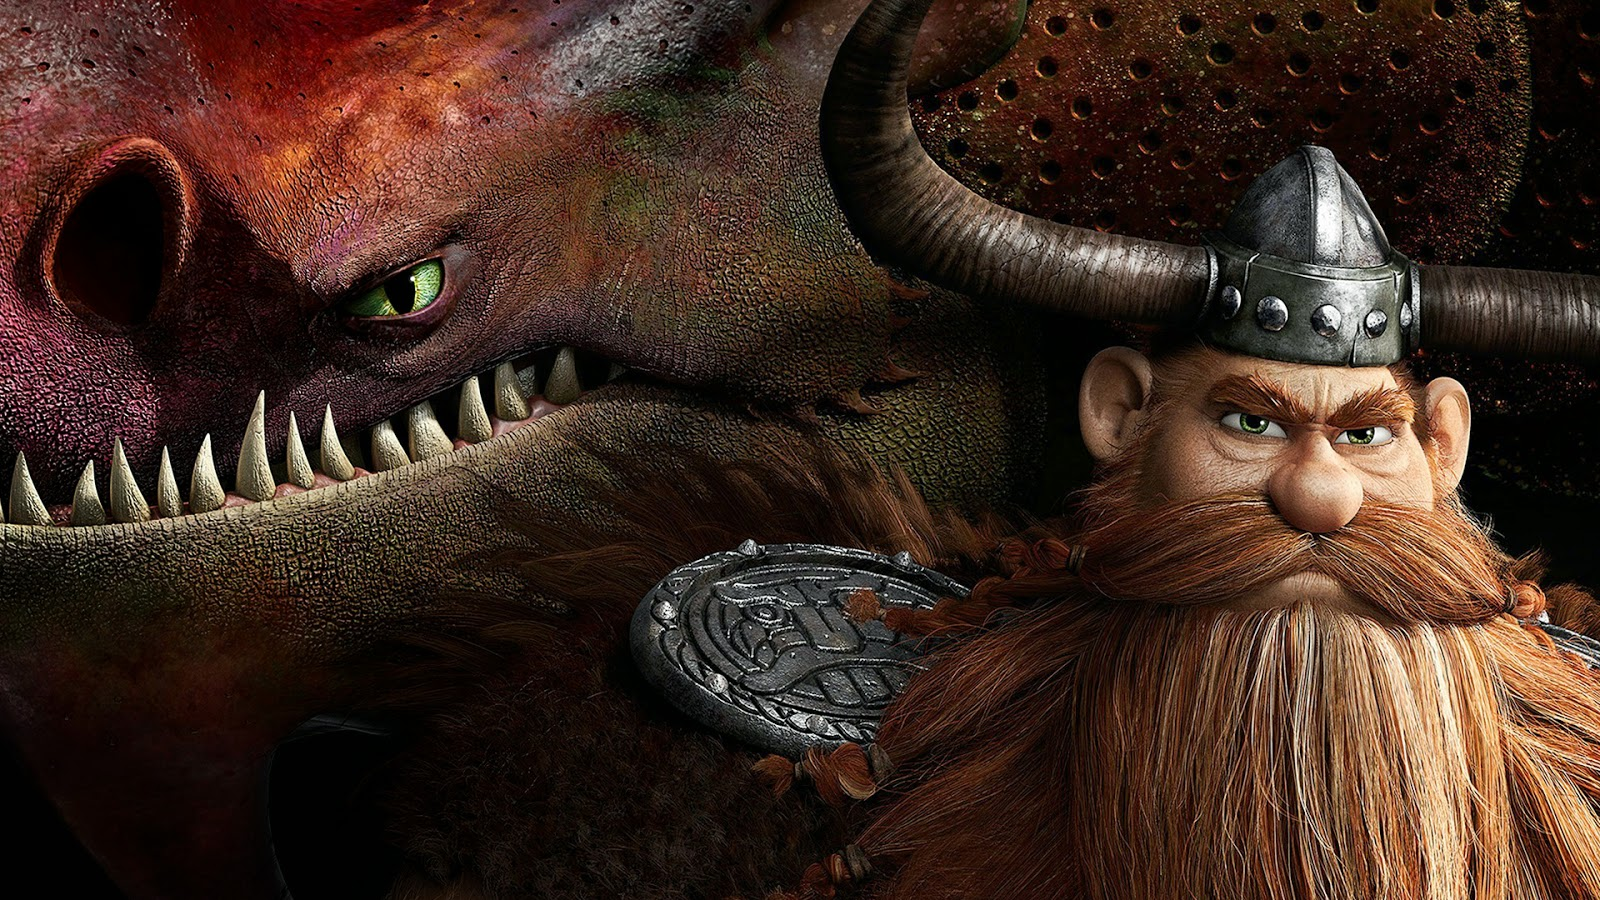 How To Train Your Dragon 2 Porn Delightful maximum extreme - the ultimate movie and lifestyle website: how to